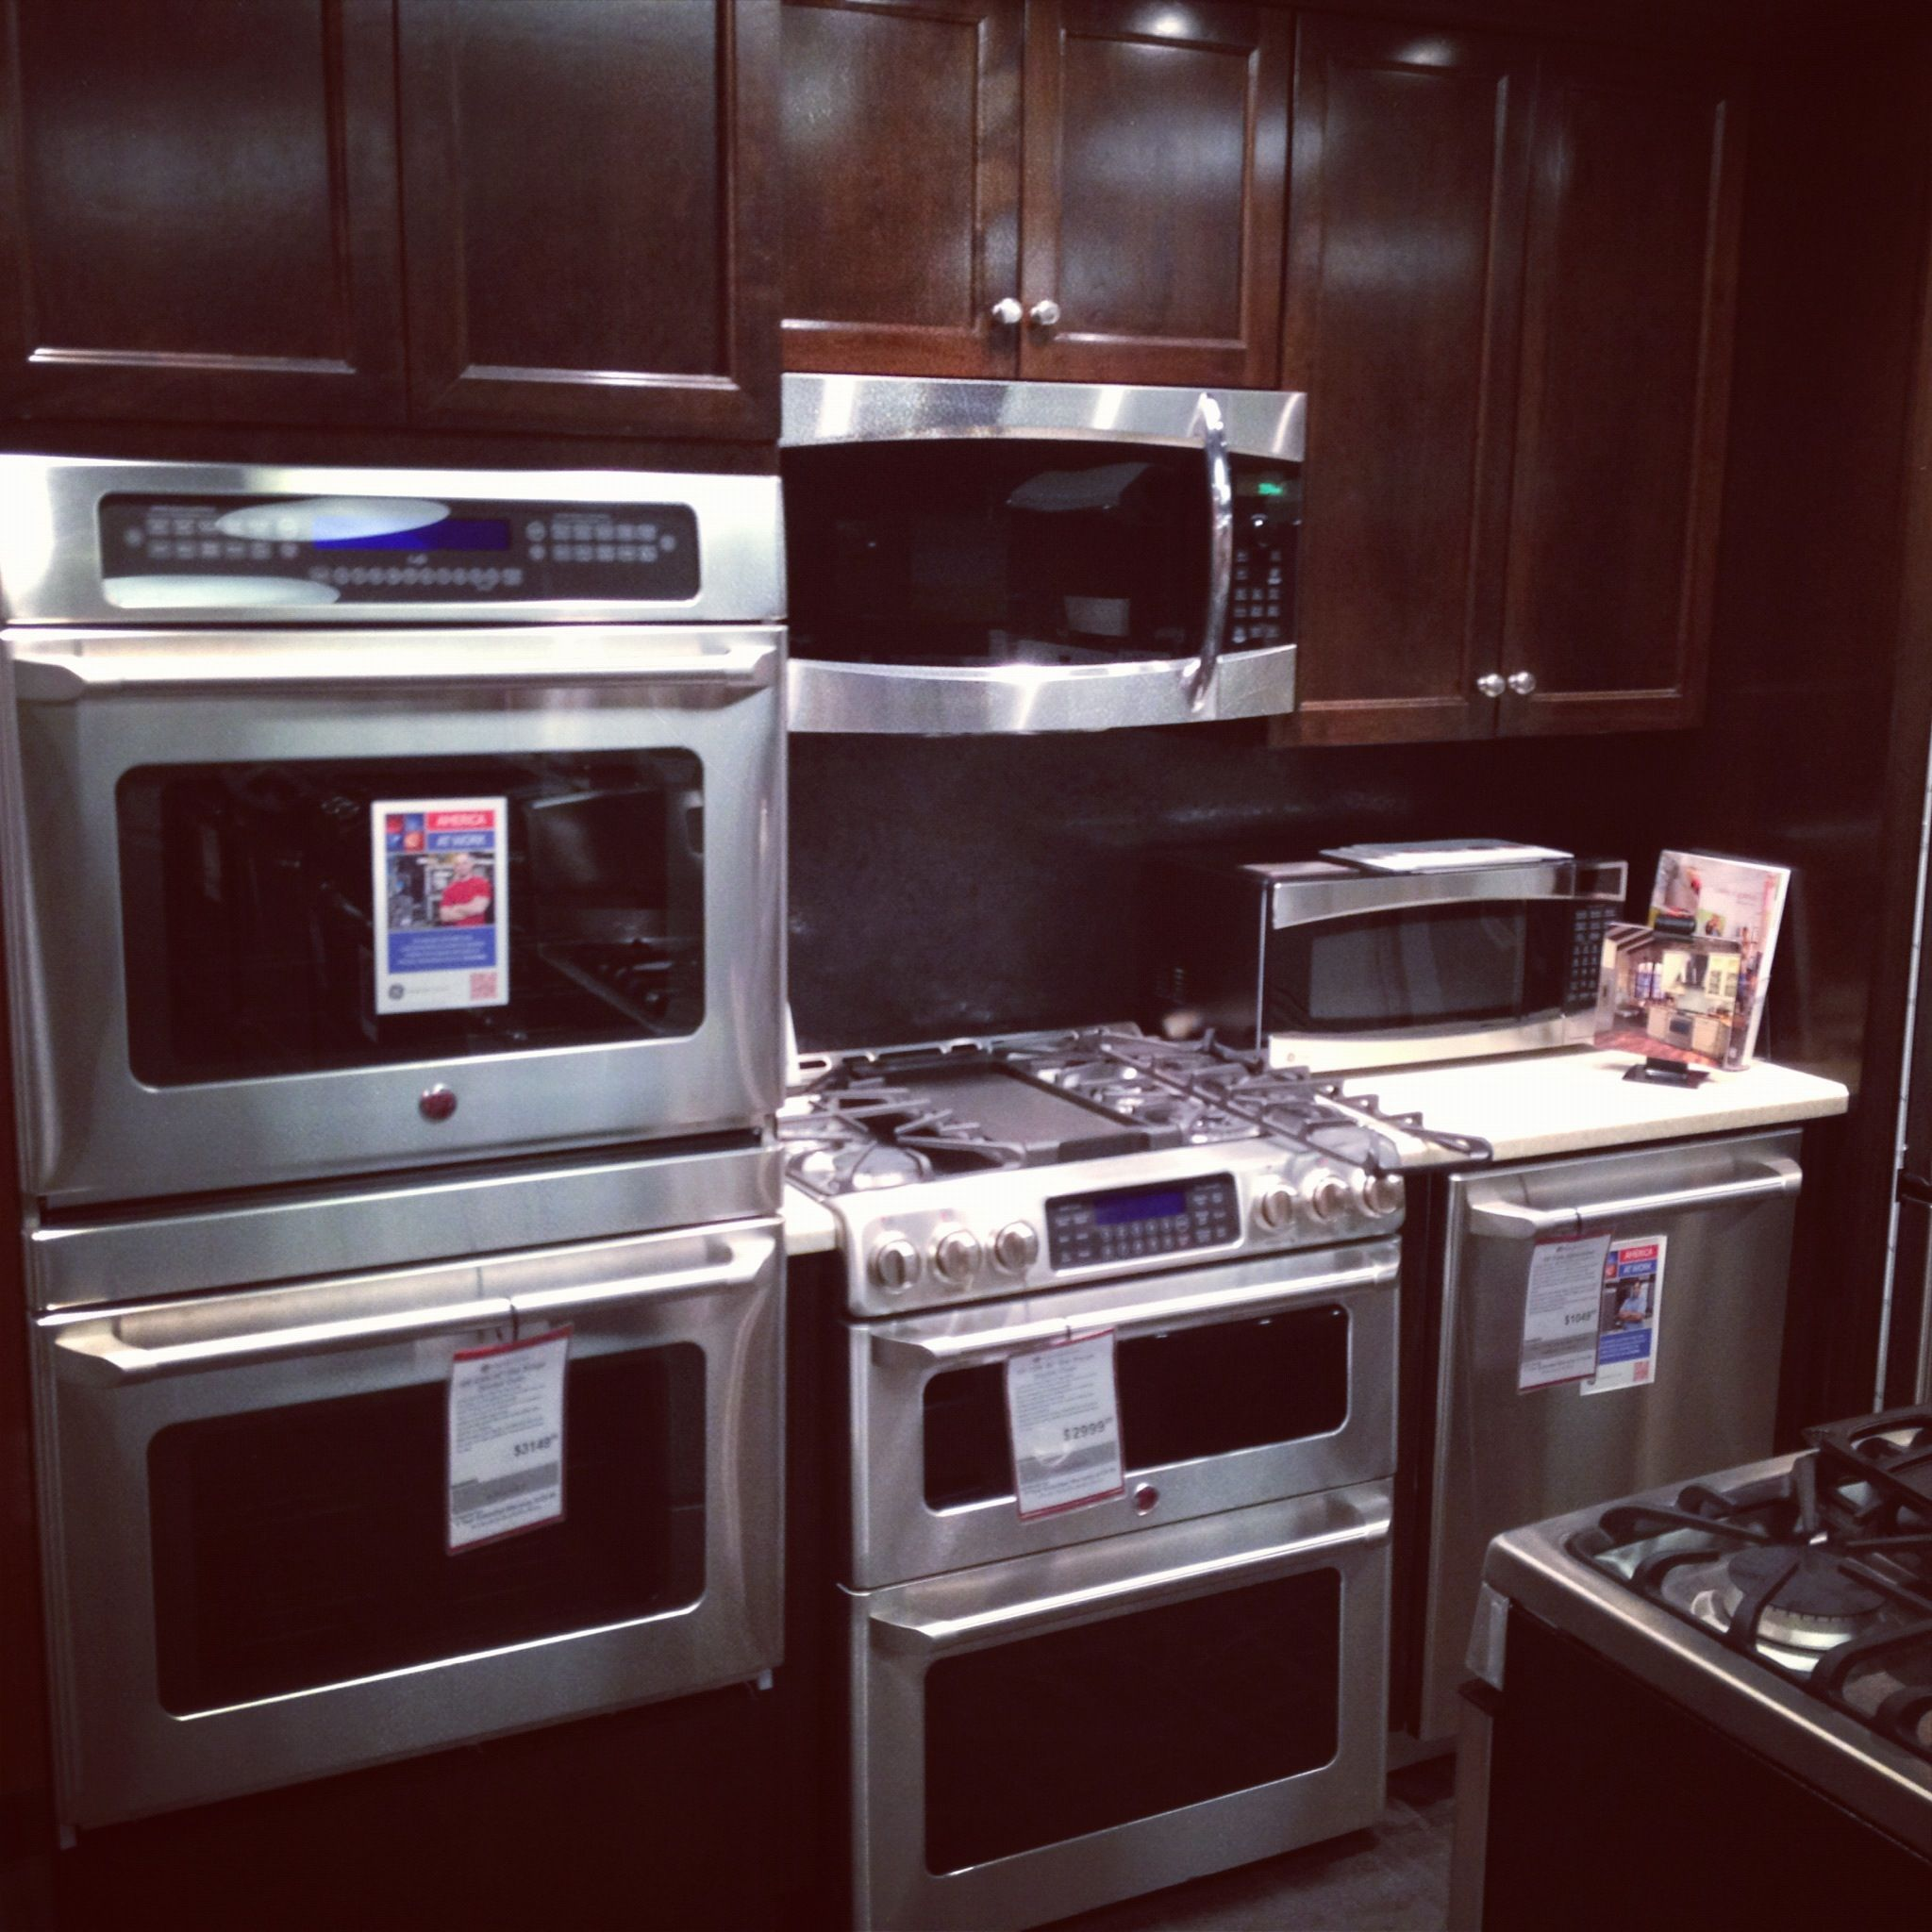 Ge Cafe Kitchen At Gerhards Appliances With A Gas Double Oven Slide